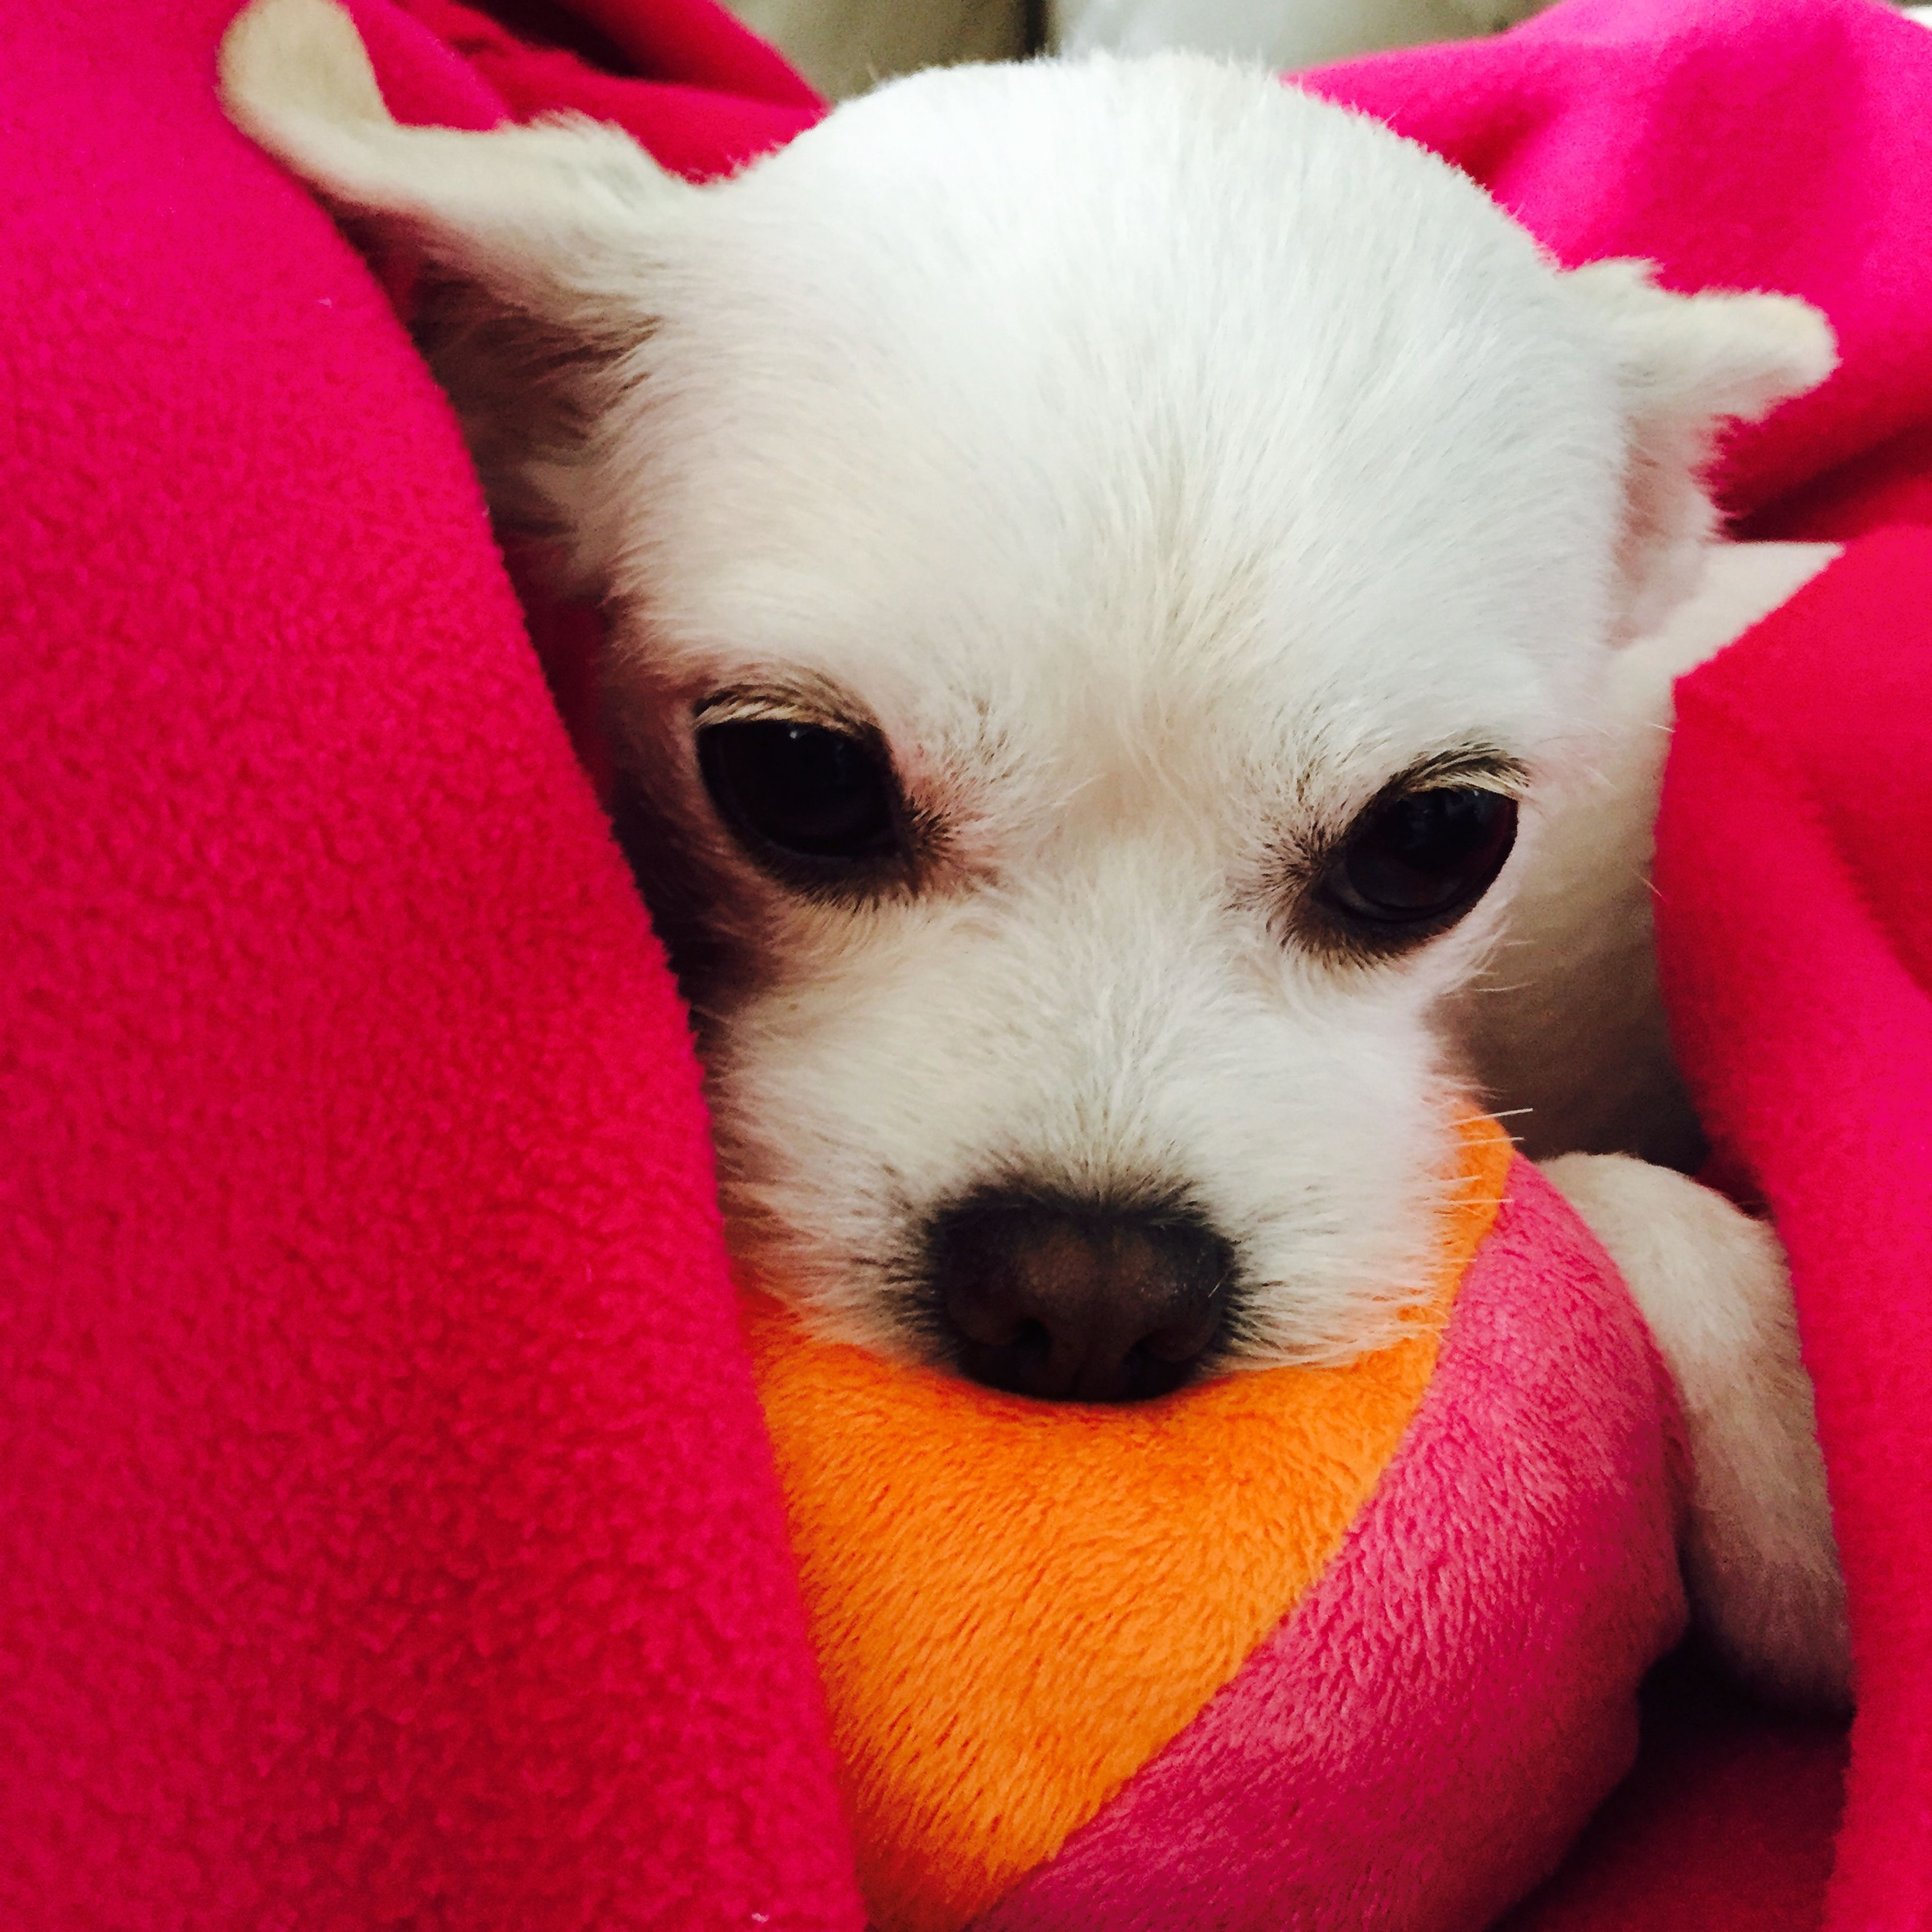 domestic animals, pets, animal themes, indoors, one animal, dog, mammal, close-up, portrait, looking at camera, white color, animal head, relaxation, bed, no people, pink color, high angle view, red, cute, animal body part